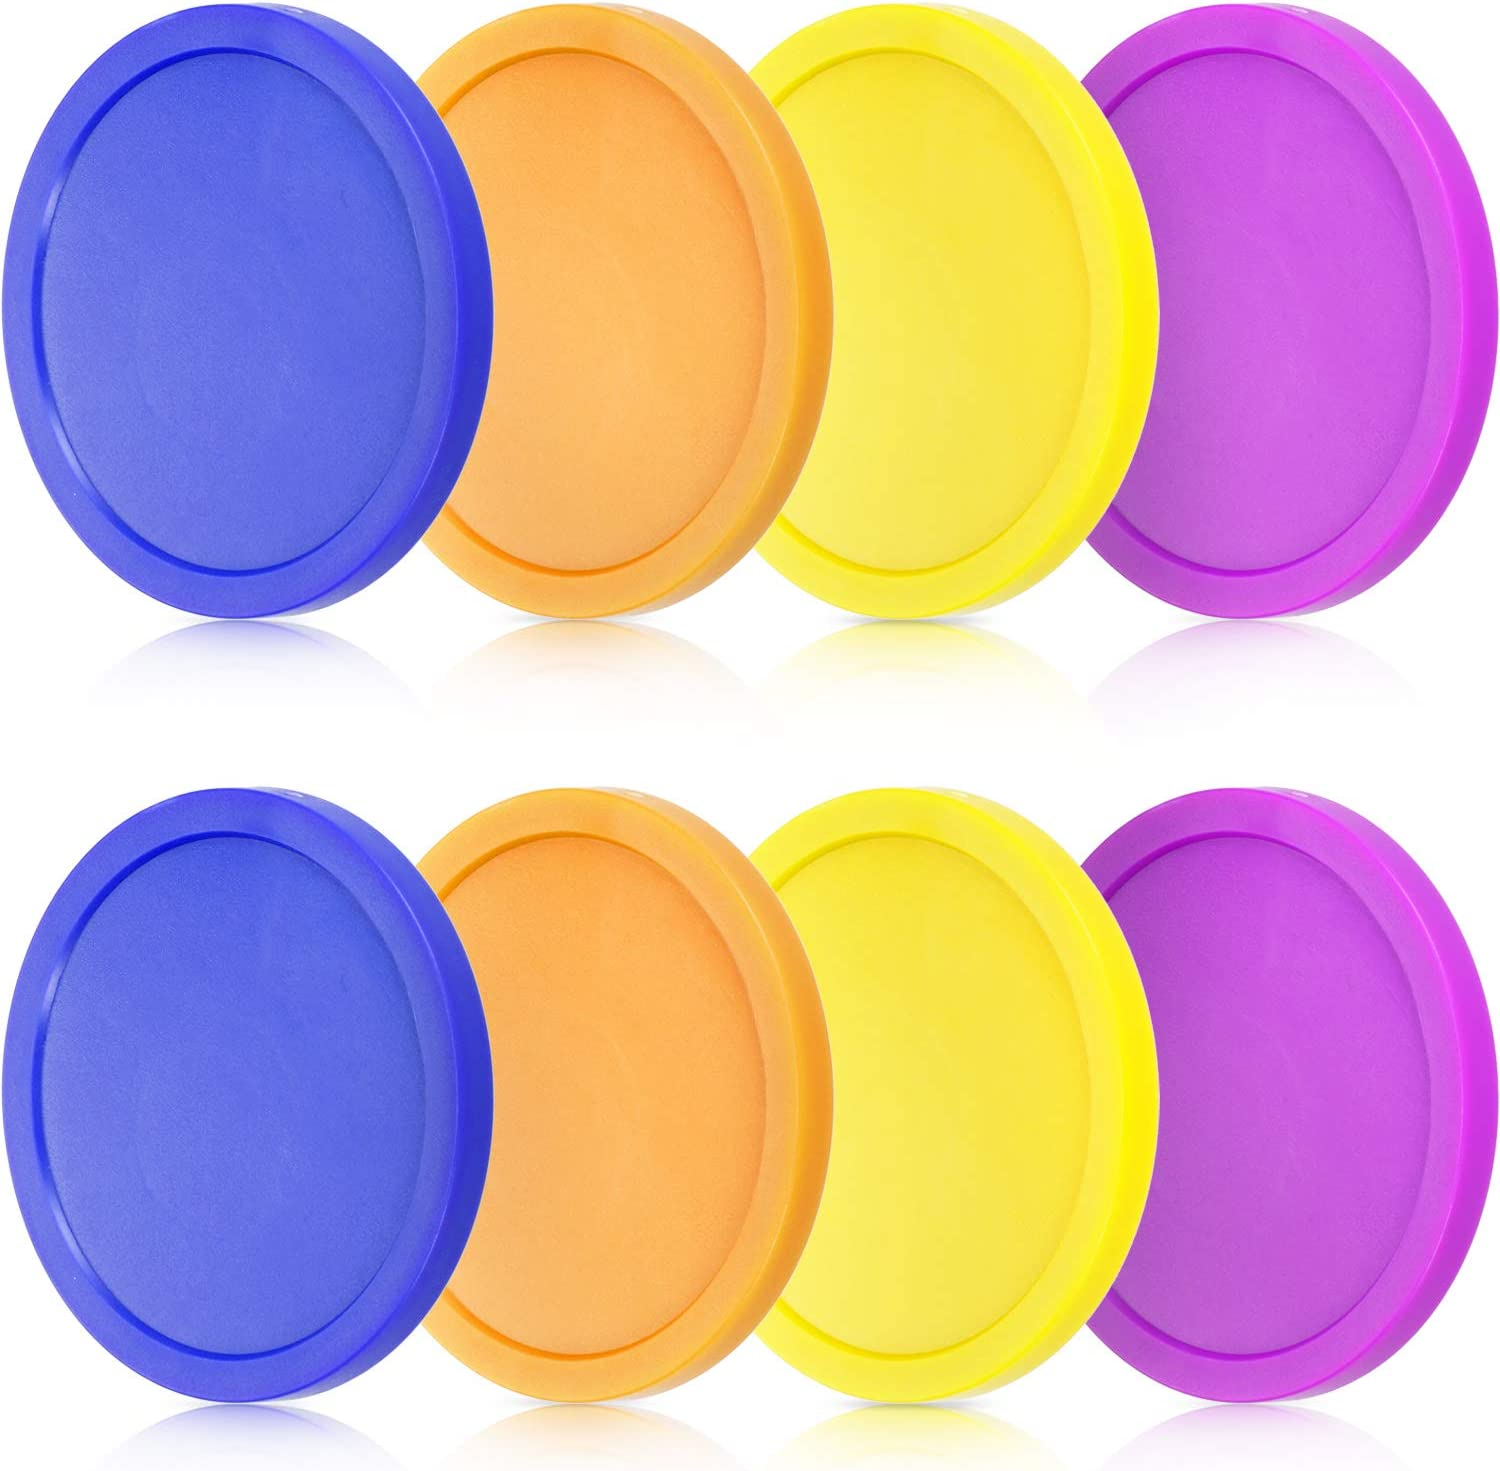 8 Pieces Air Hockey Pucks Replacement Round Pucks for Game Tables, Equipment, Accessories (Blue, Yellow, Purple, Orange, 3.2 Inch): Toys & Games